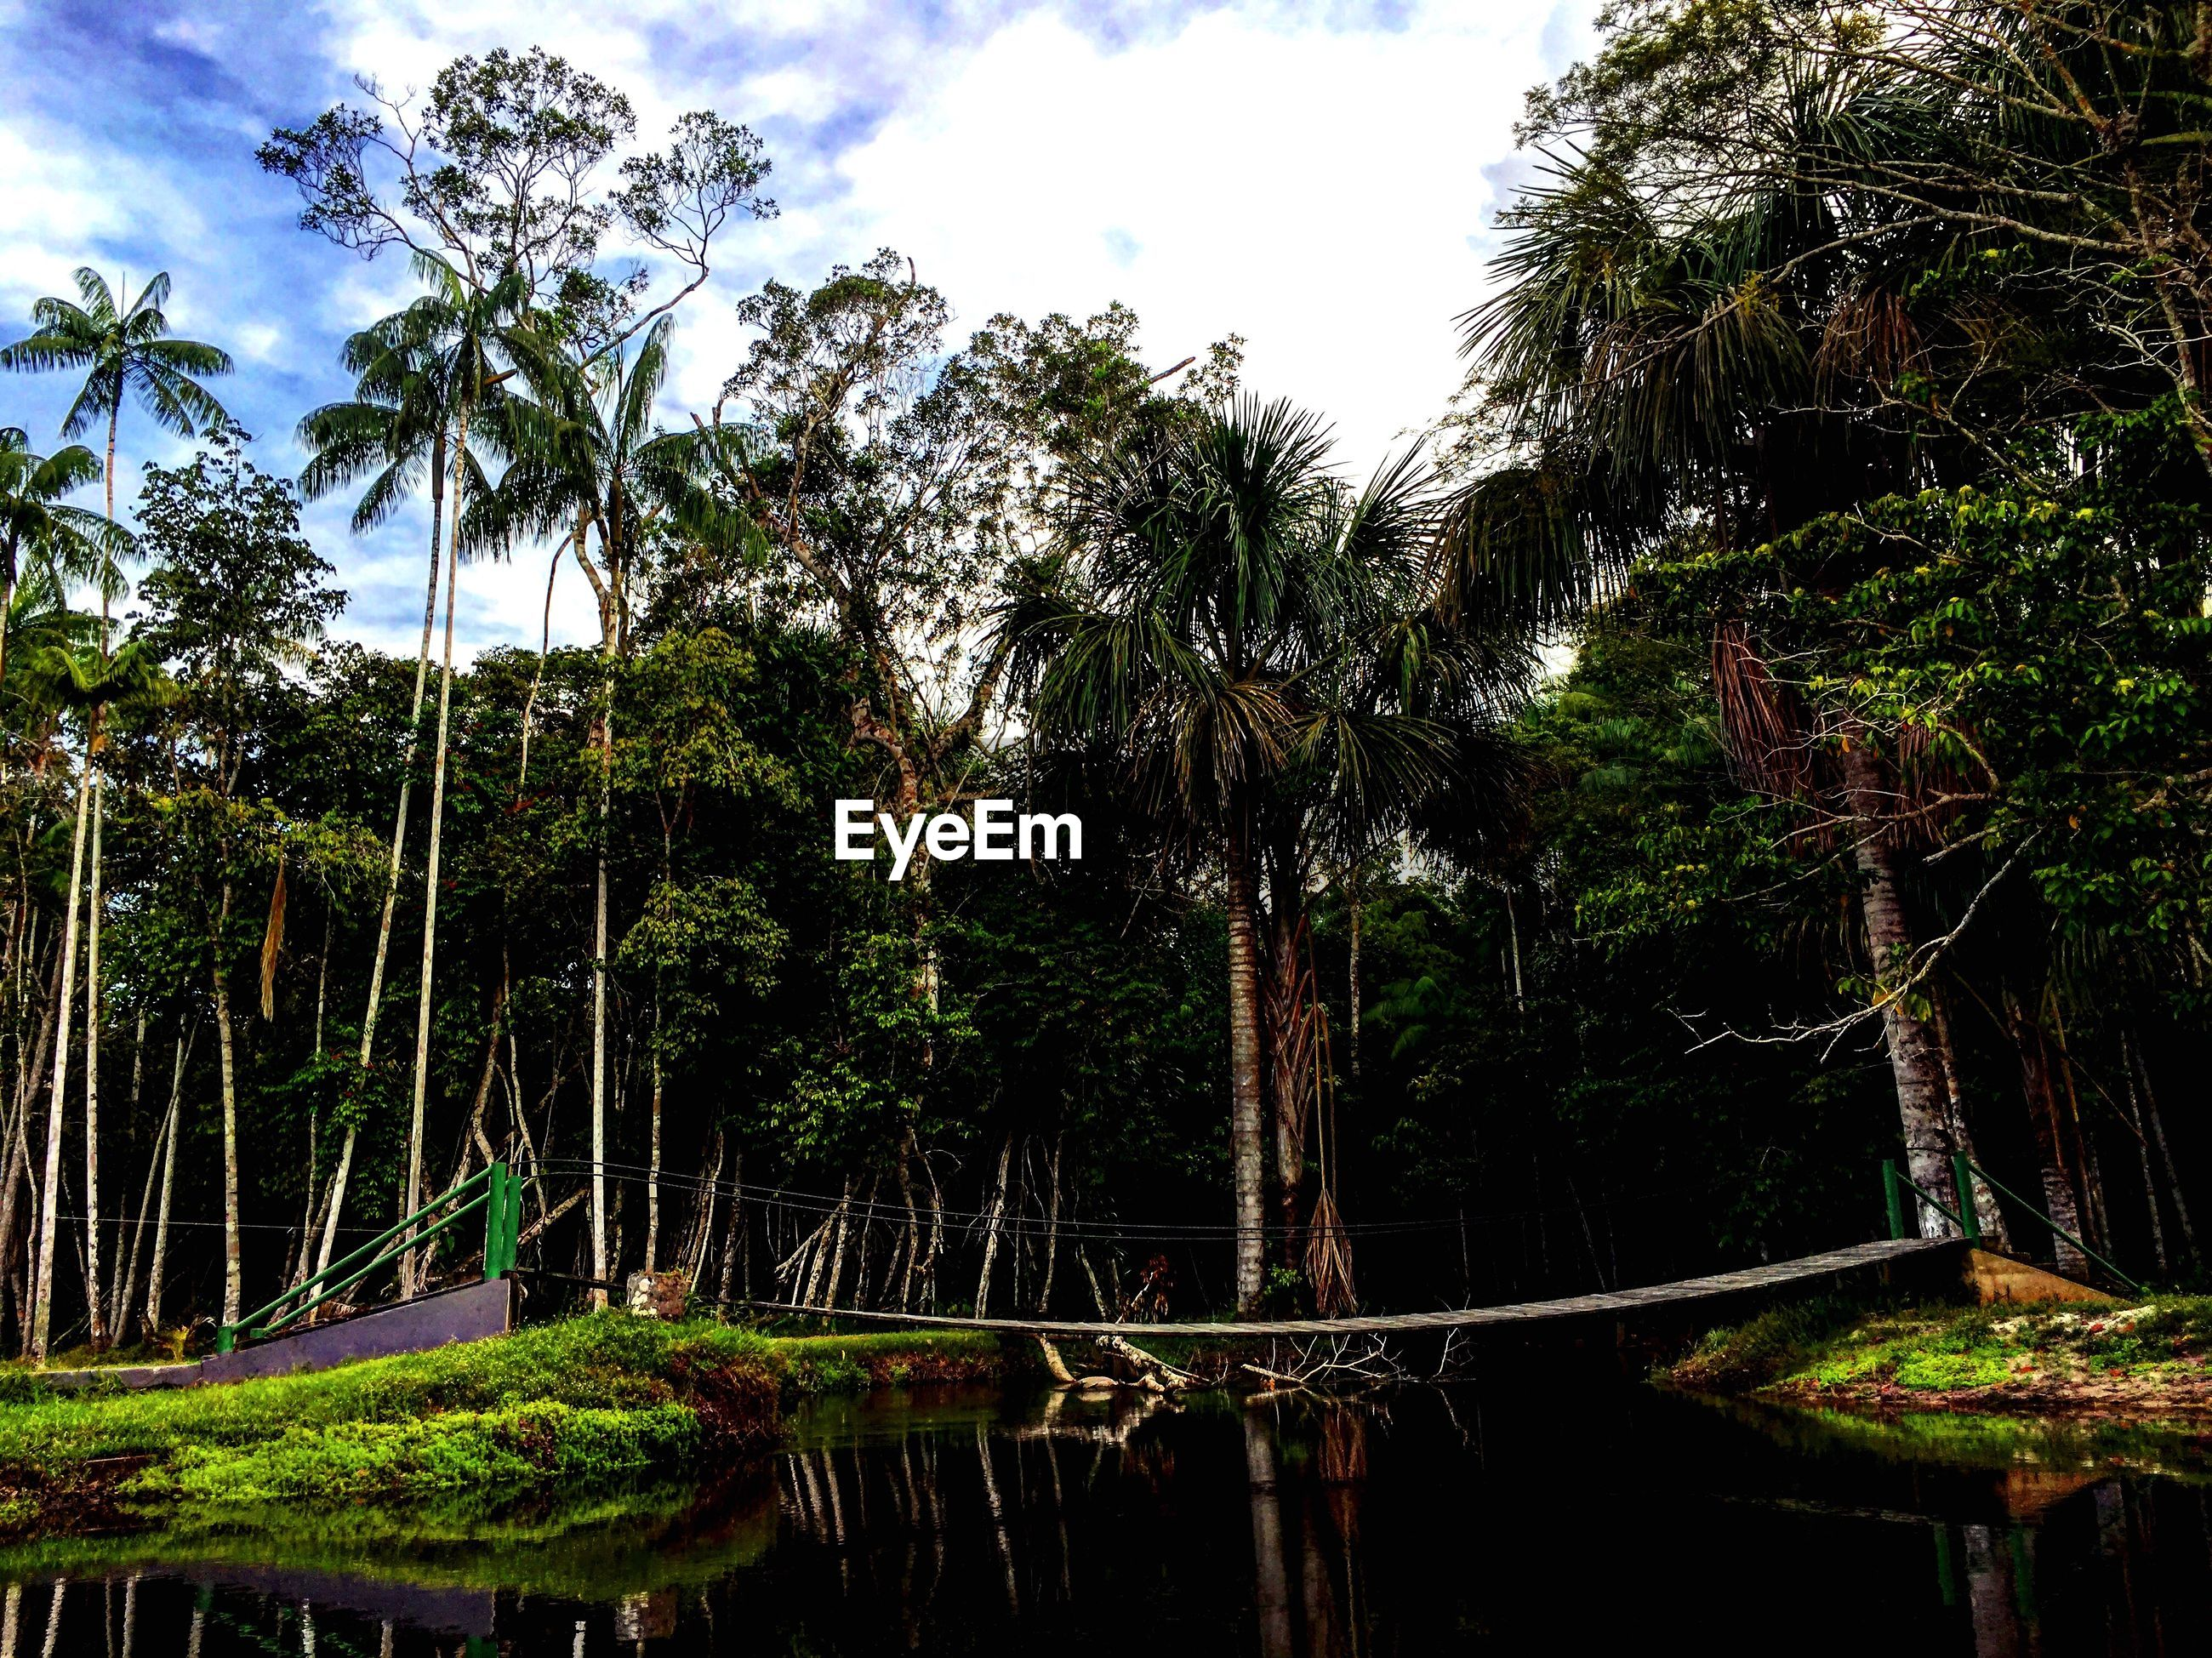 tree, palm tree, nature, tranquility, no people, growth, outdoors, scenics, beauty in nature, water, sky, day